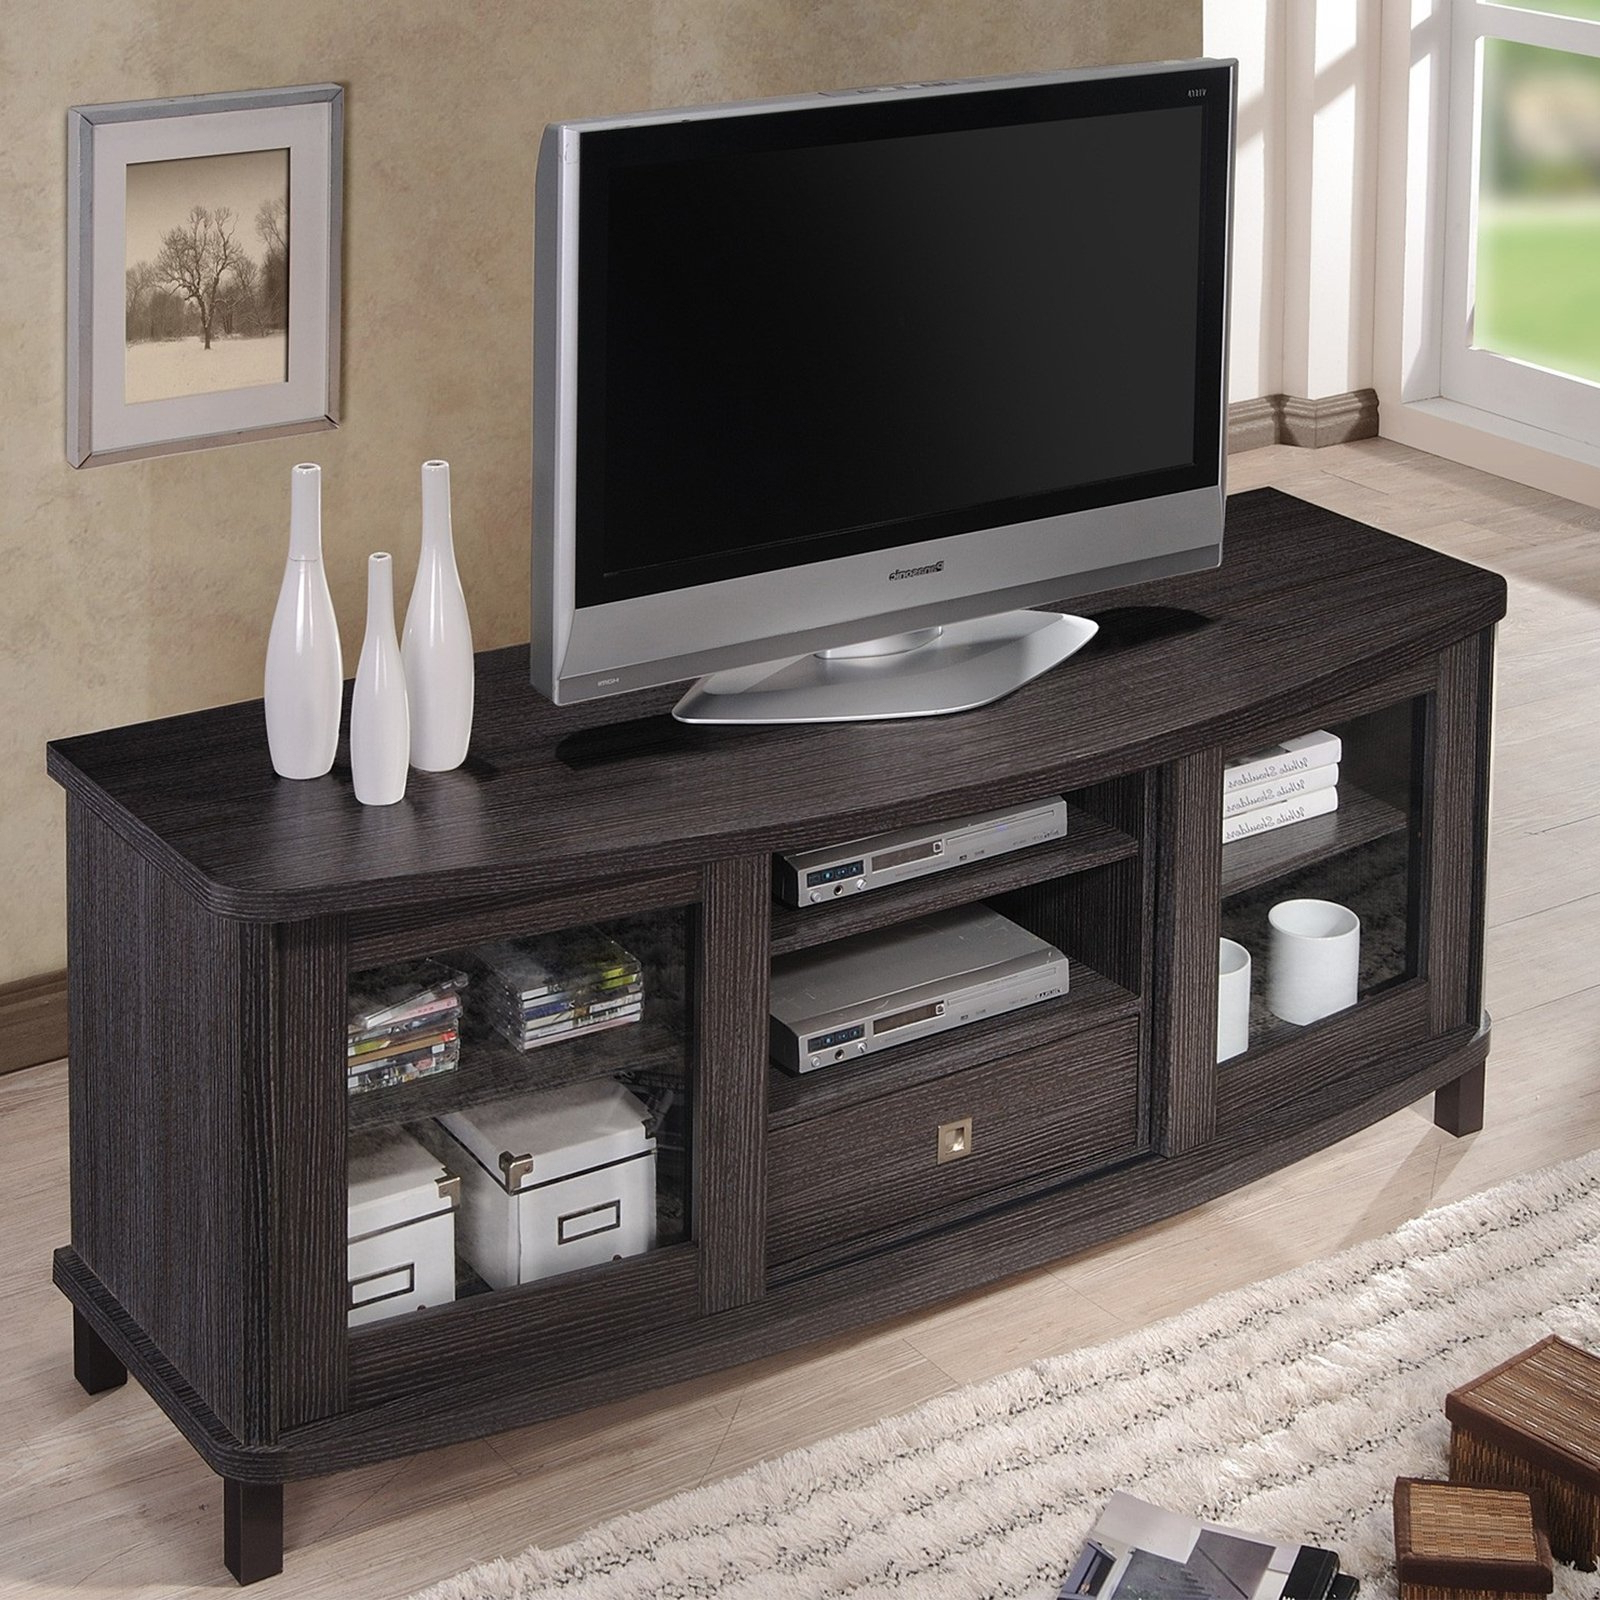 Baxton Studio Walda 60 Inch Dark Brown Wood Tv Cabinet Pertaining To Tv Stands With Drawer And Cabinets (View 1 of 20)